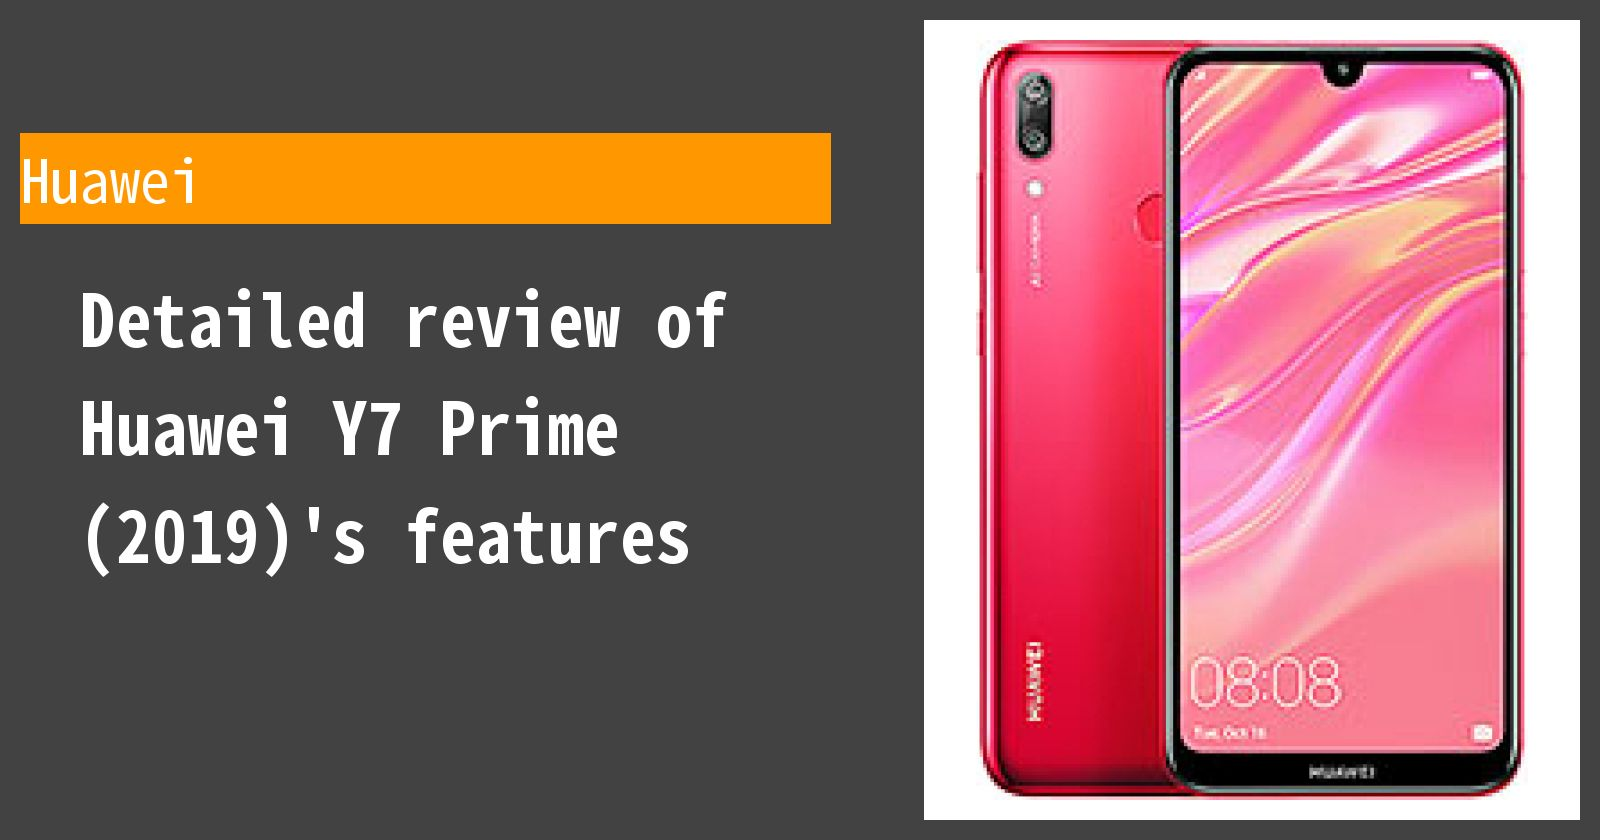 Detailed review of Huawei Y7 Prime (2019)'s features